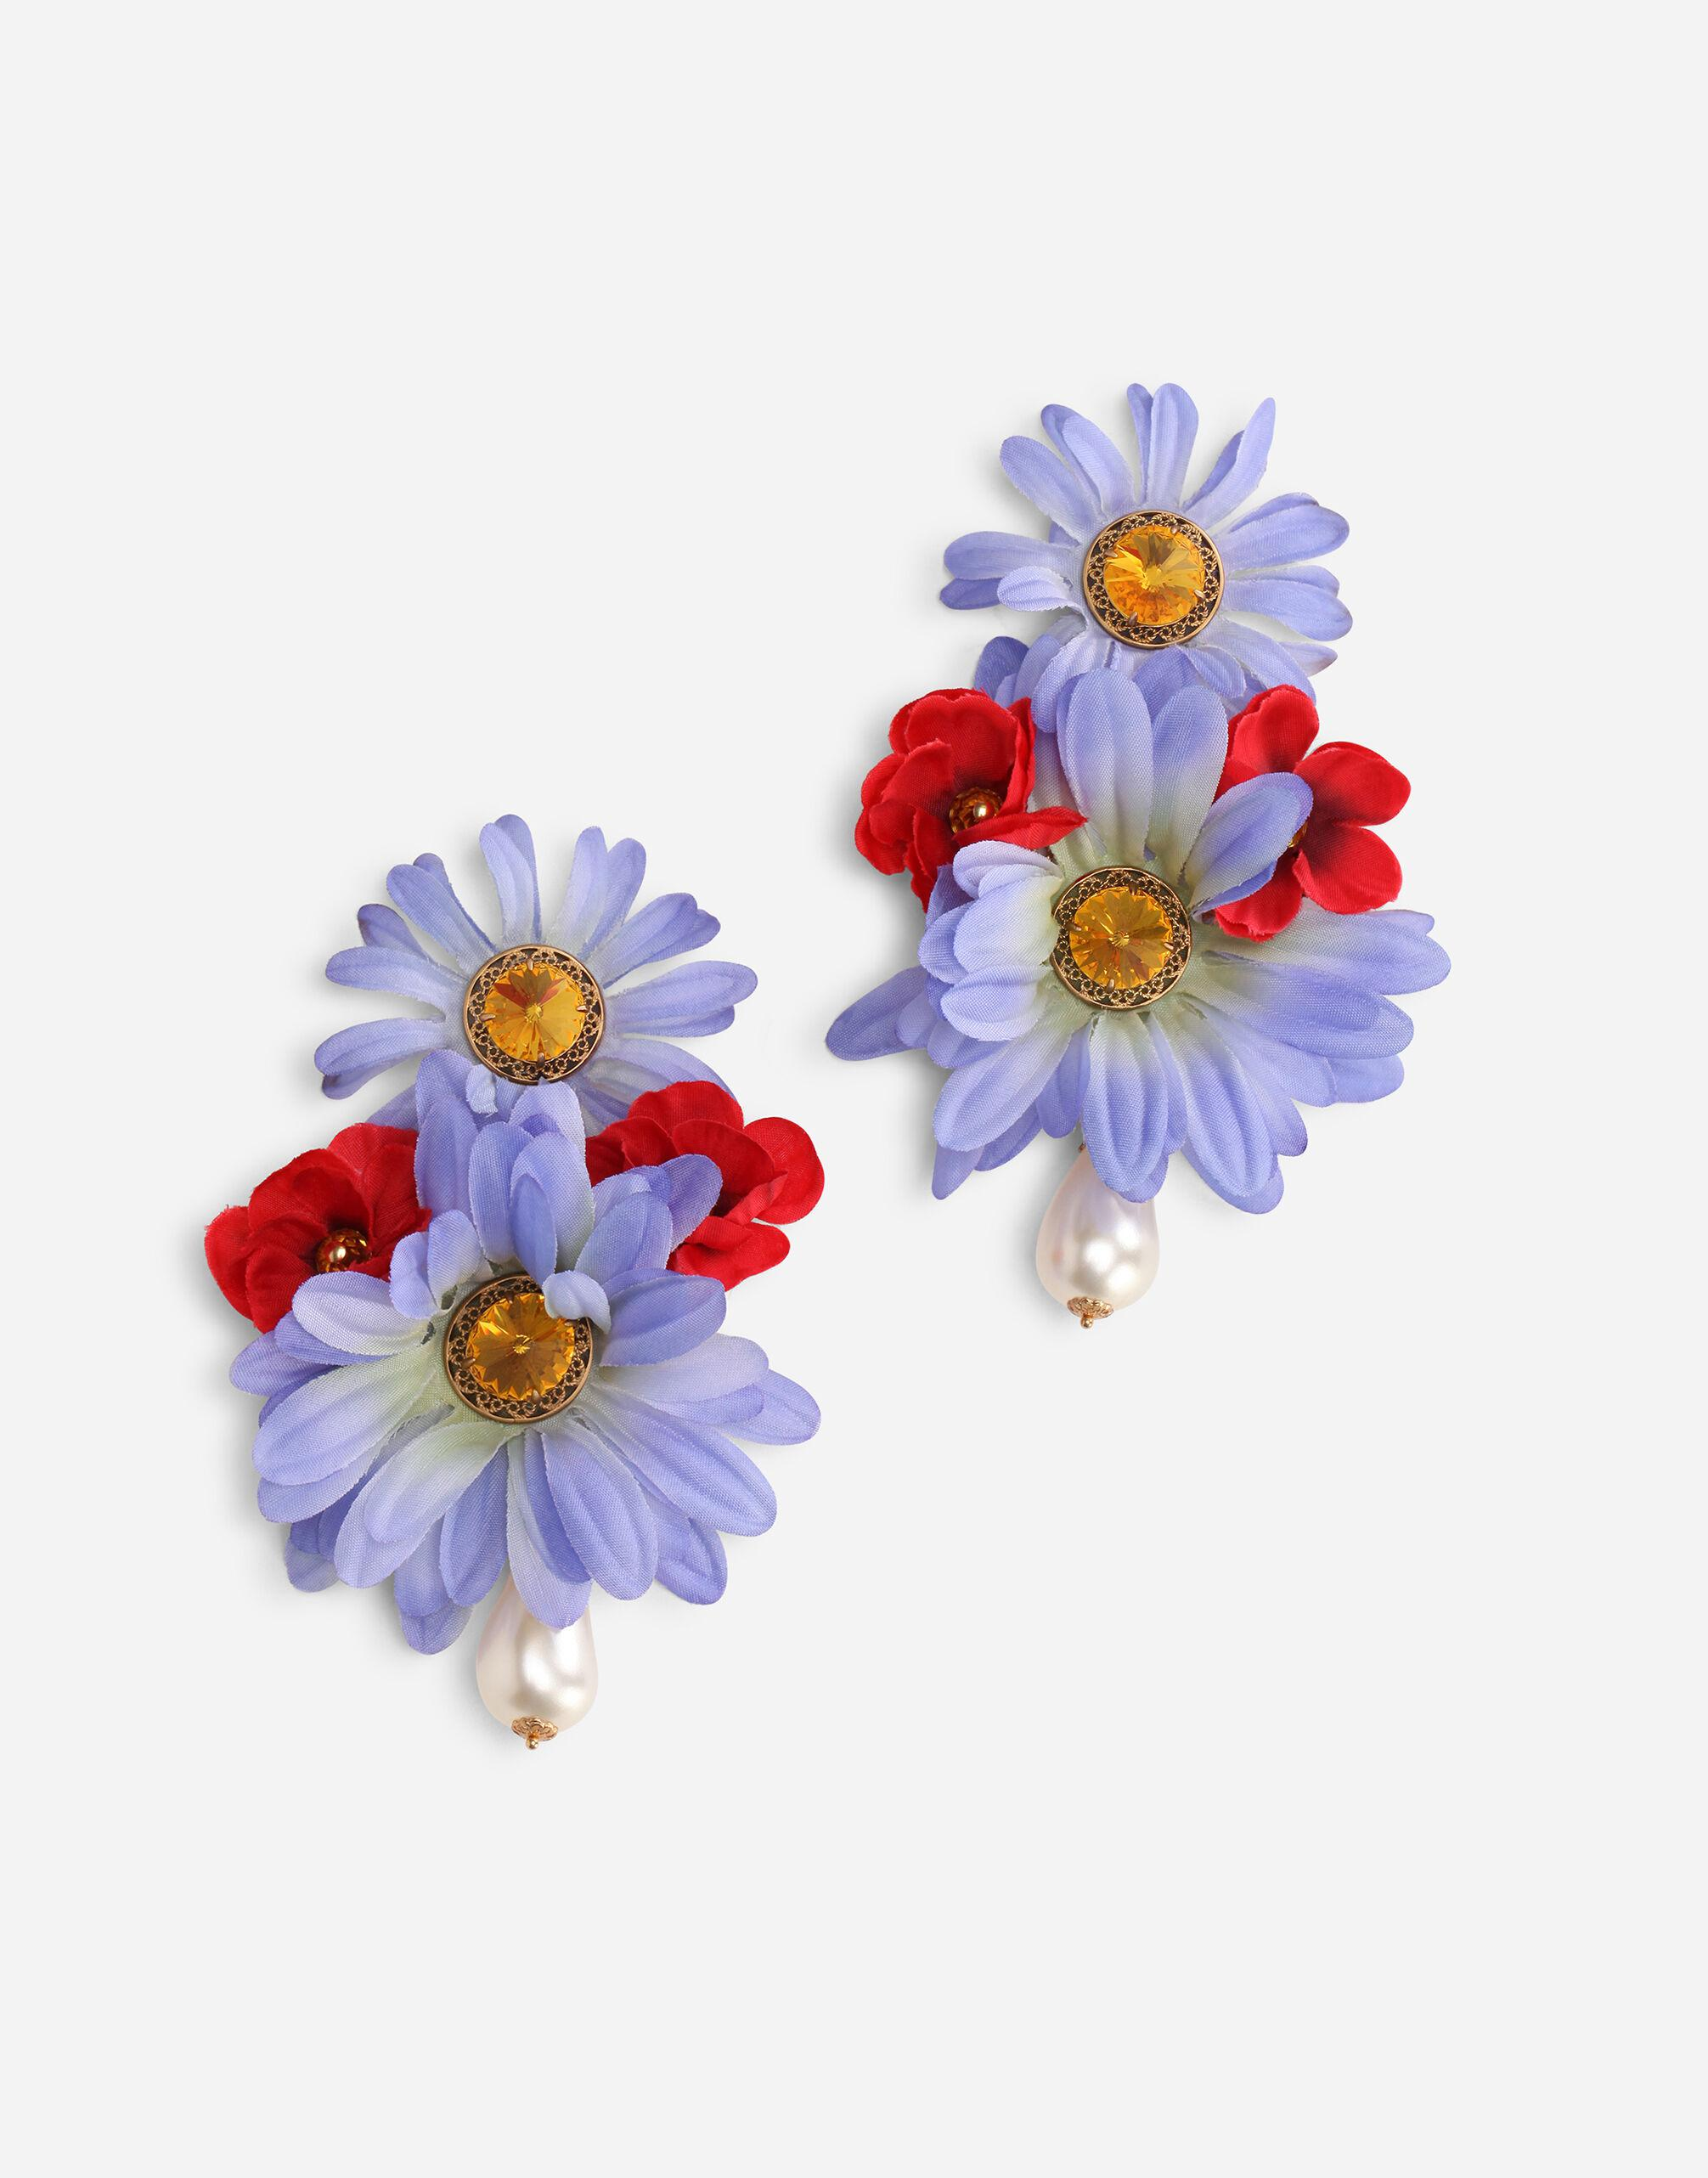 Drop earrings with fabric flowers